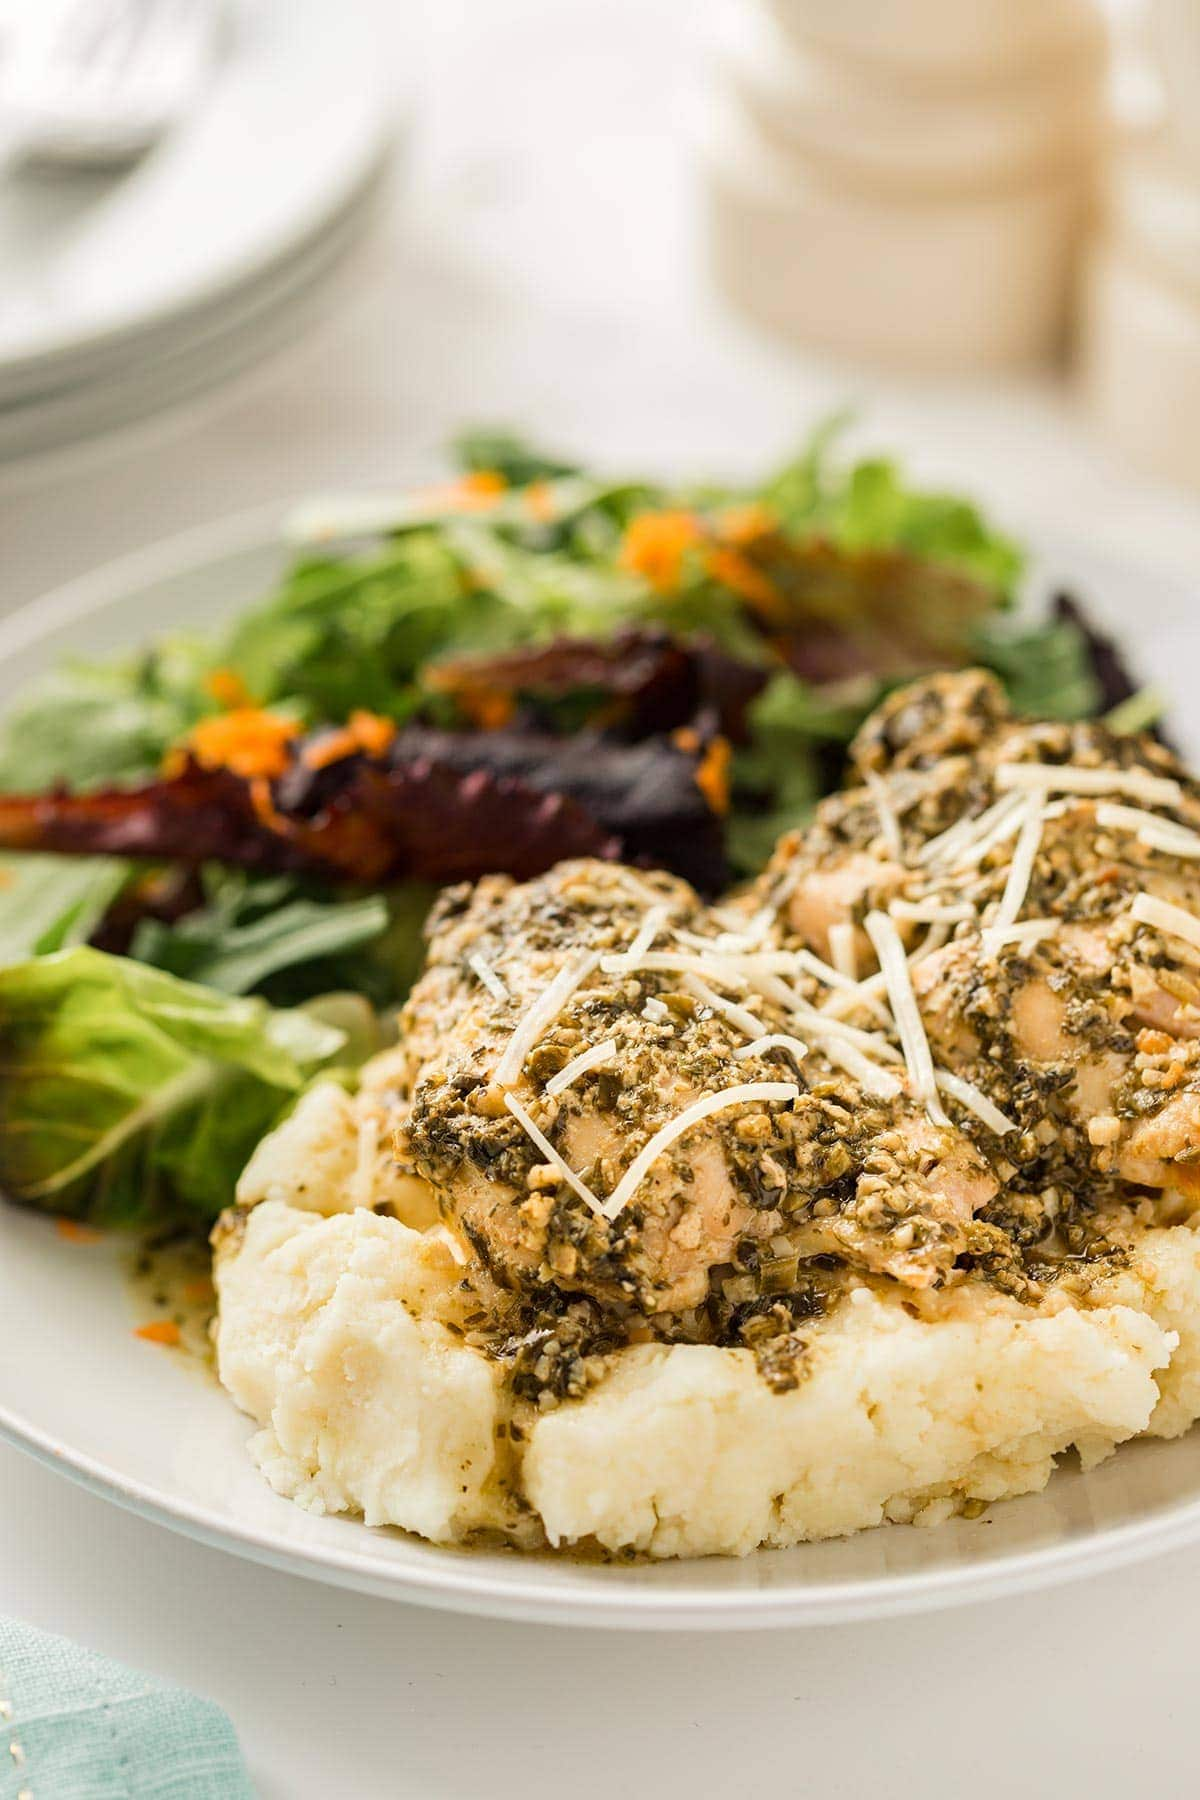 Dinner plate with Pesto Ranch Chicken on top of mashed potatoes.